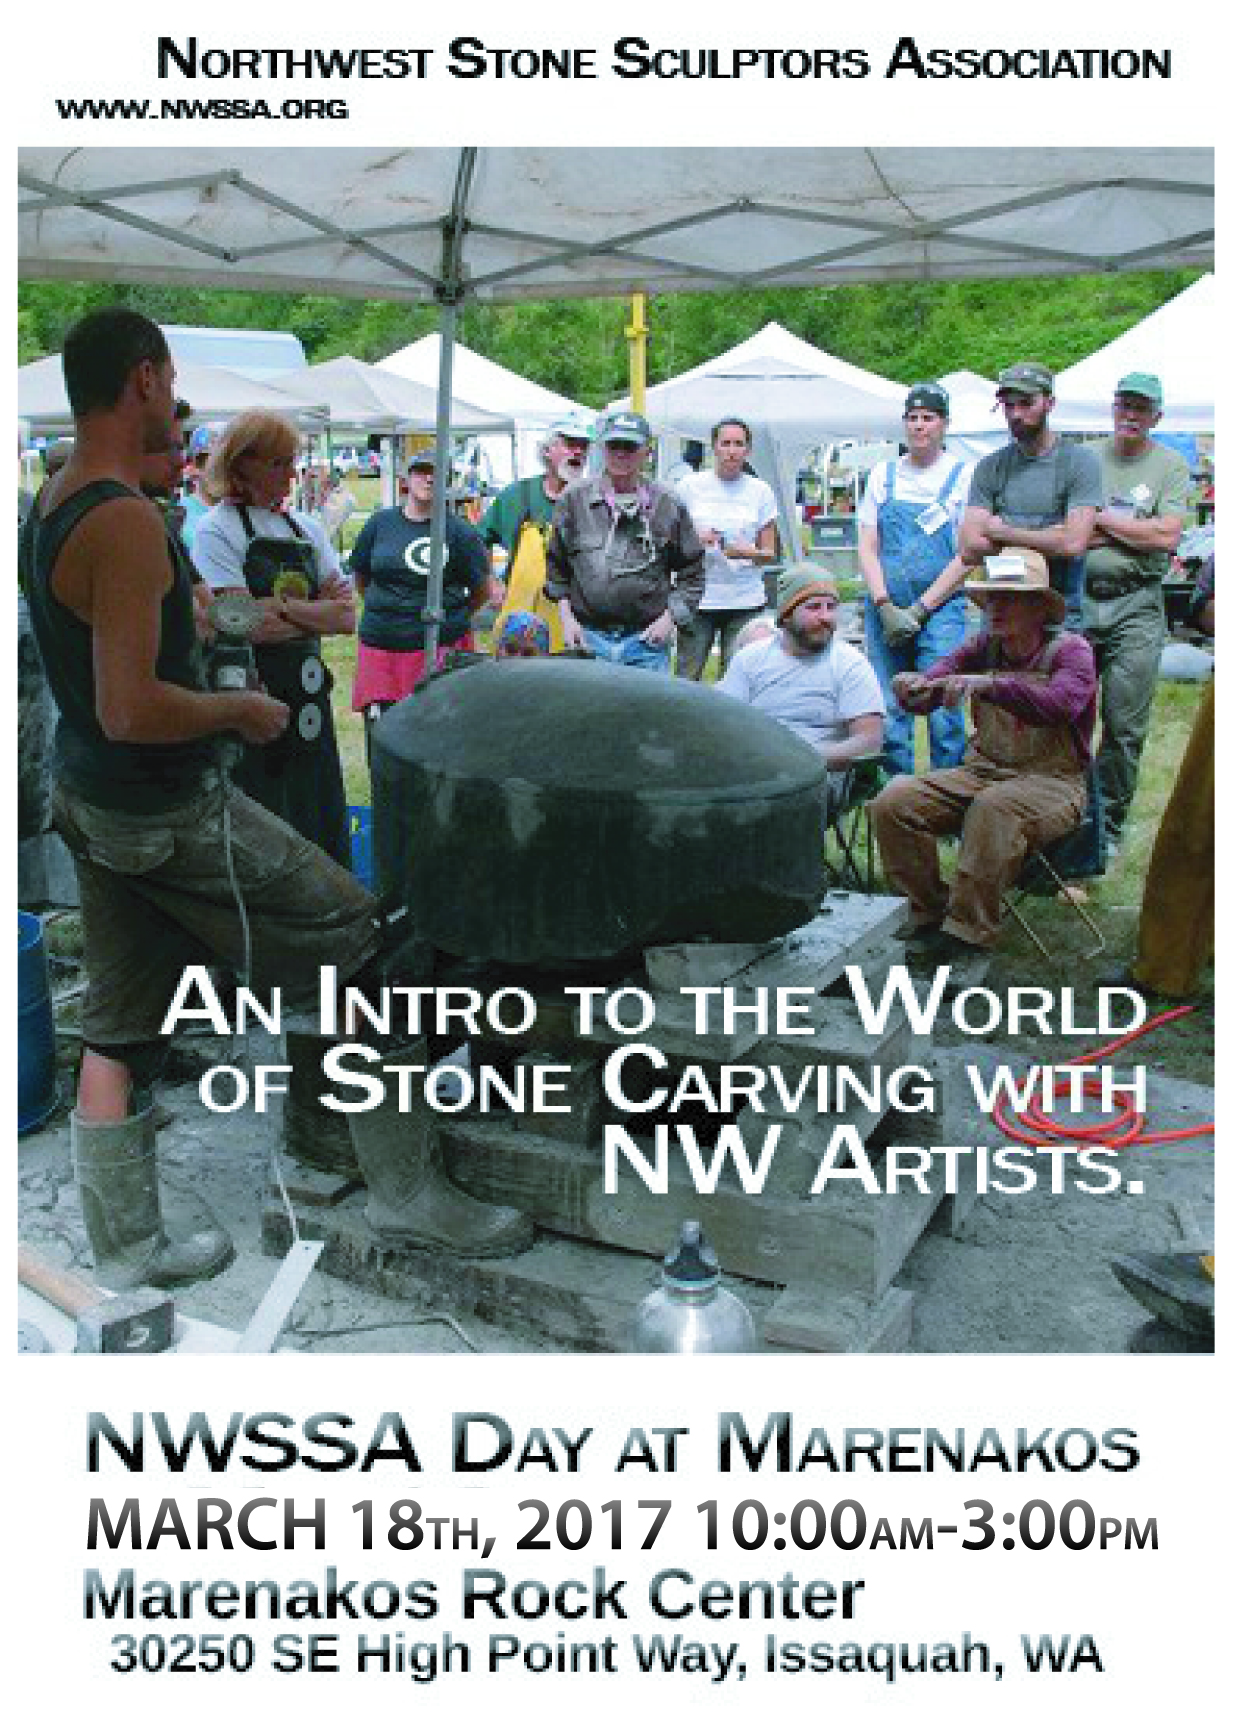 NWSSA Day at Marenakos Rock Center